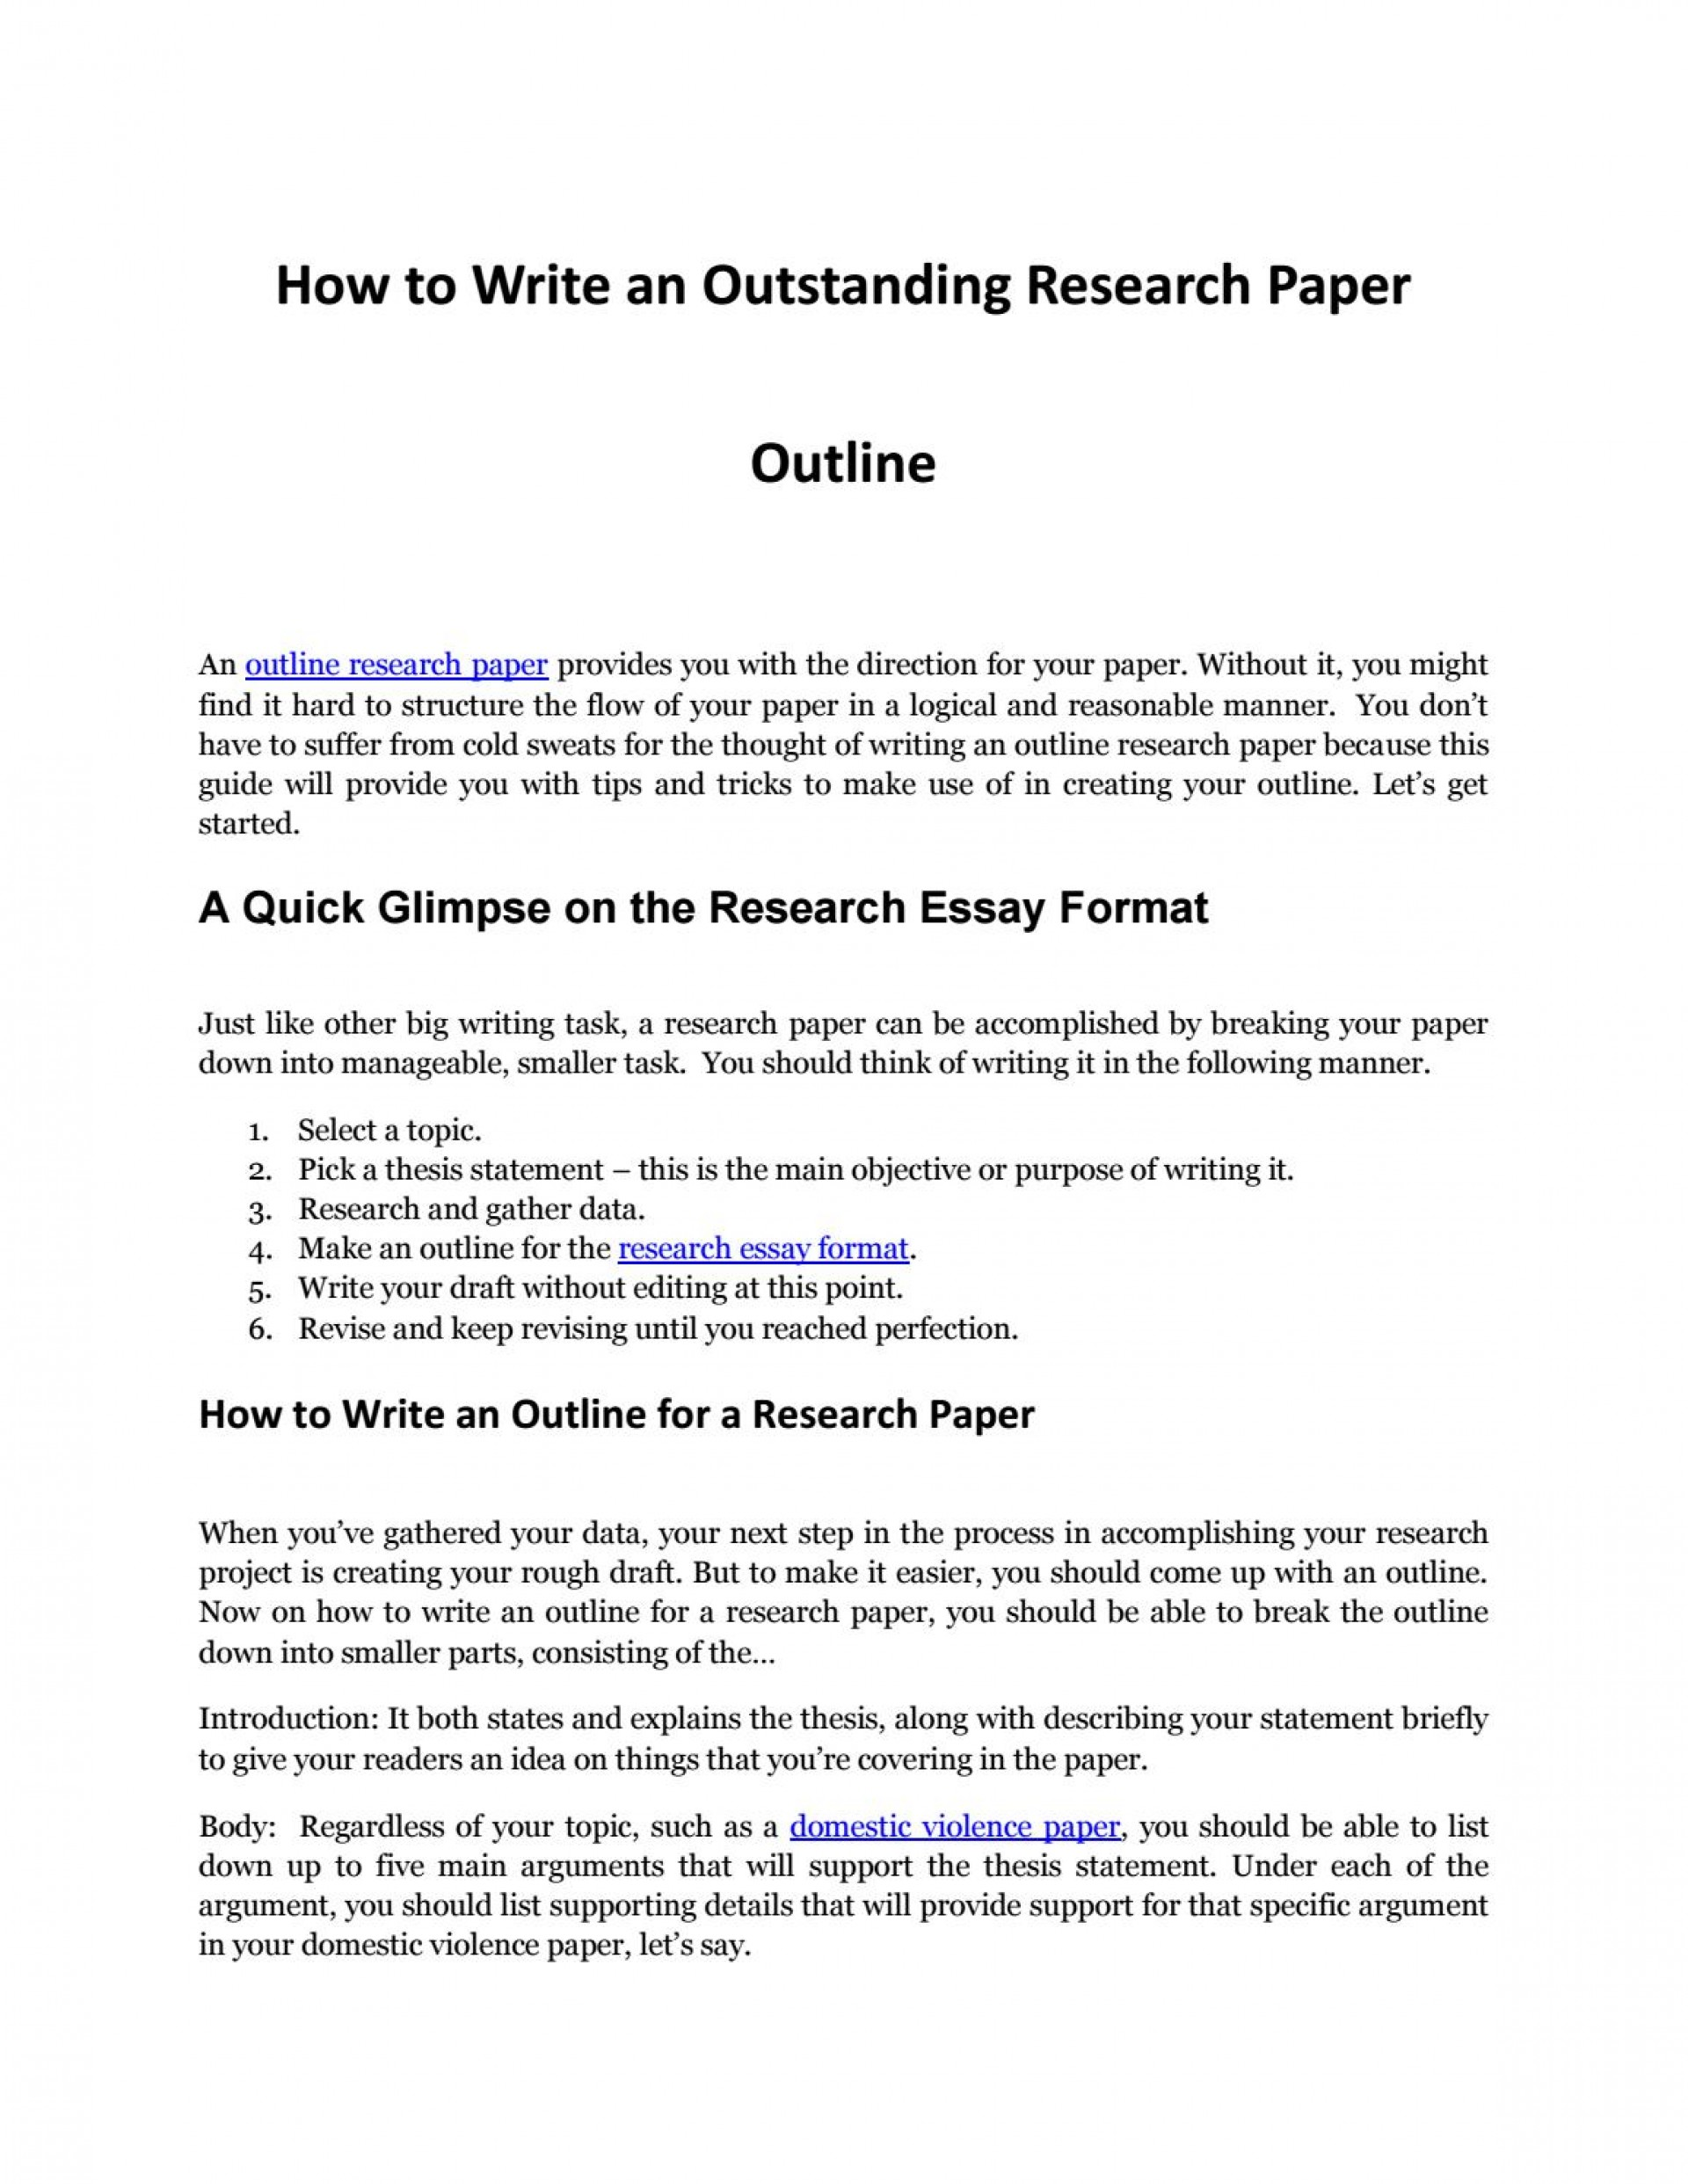 007 How To Make An Outline For Research Paper Page 1 Stirring A Examples Scientific Mla 1920